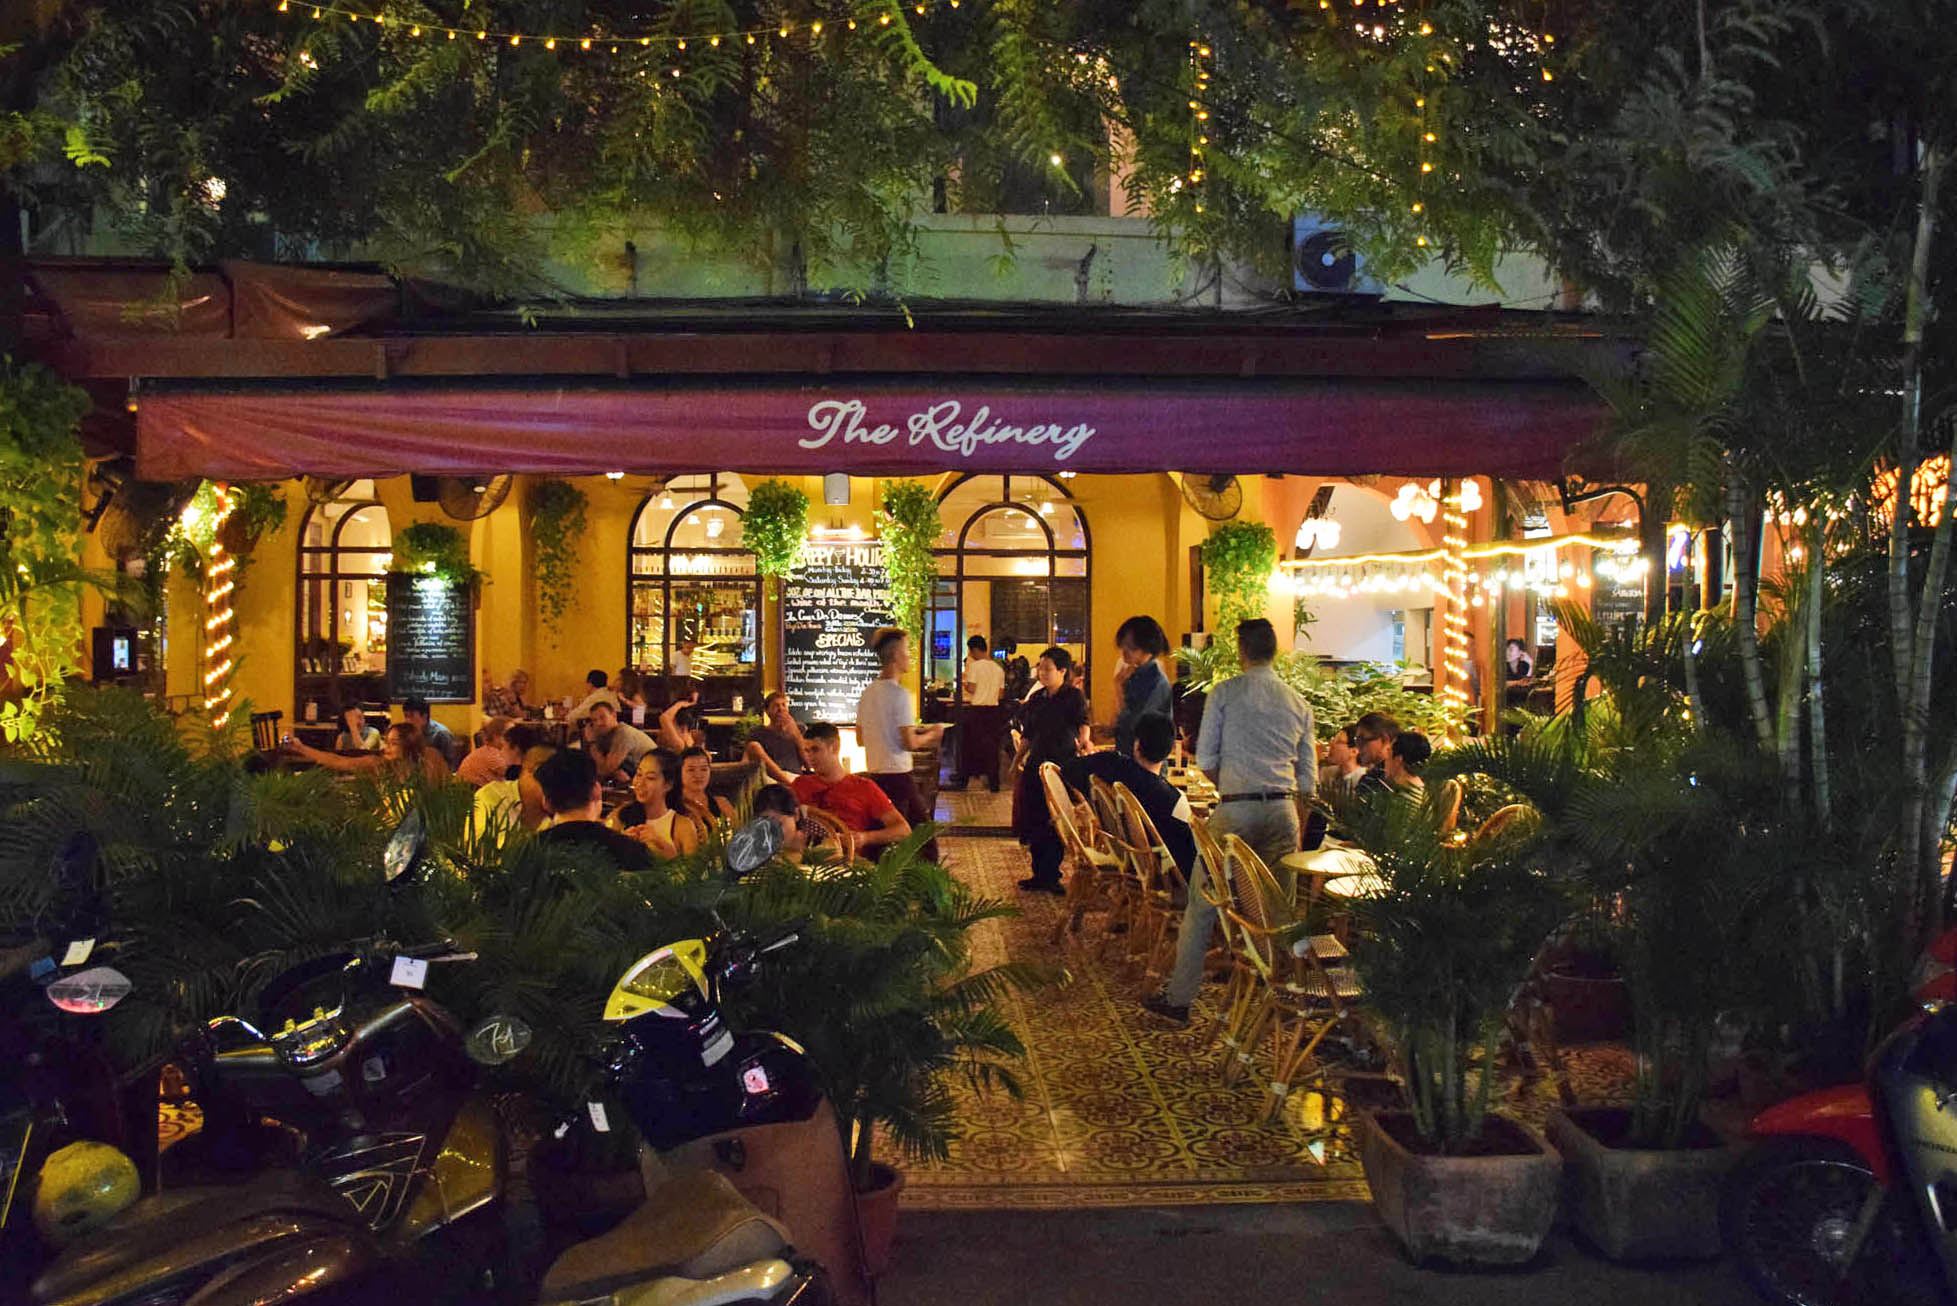 The-Refinery-Bistro-District-1-french-restaurant-ho-chi-minh-city-saigon-vietnam-best-restaurants-melhores-restaurantes